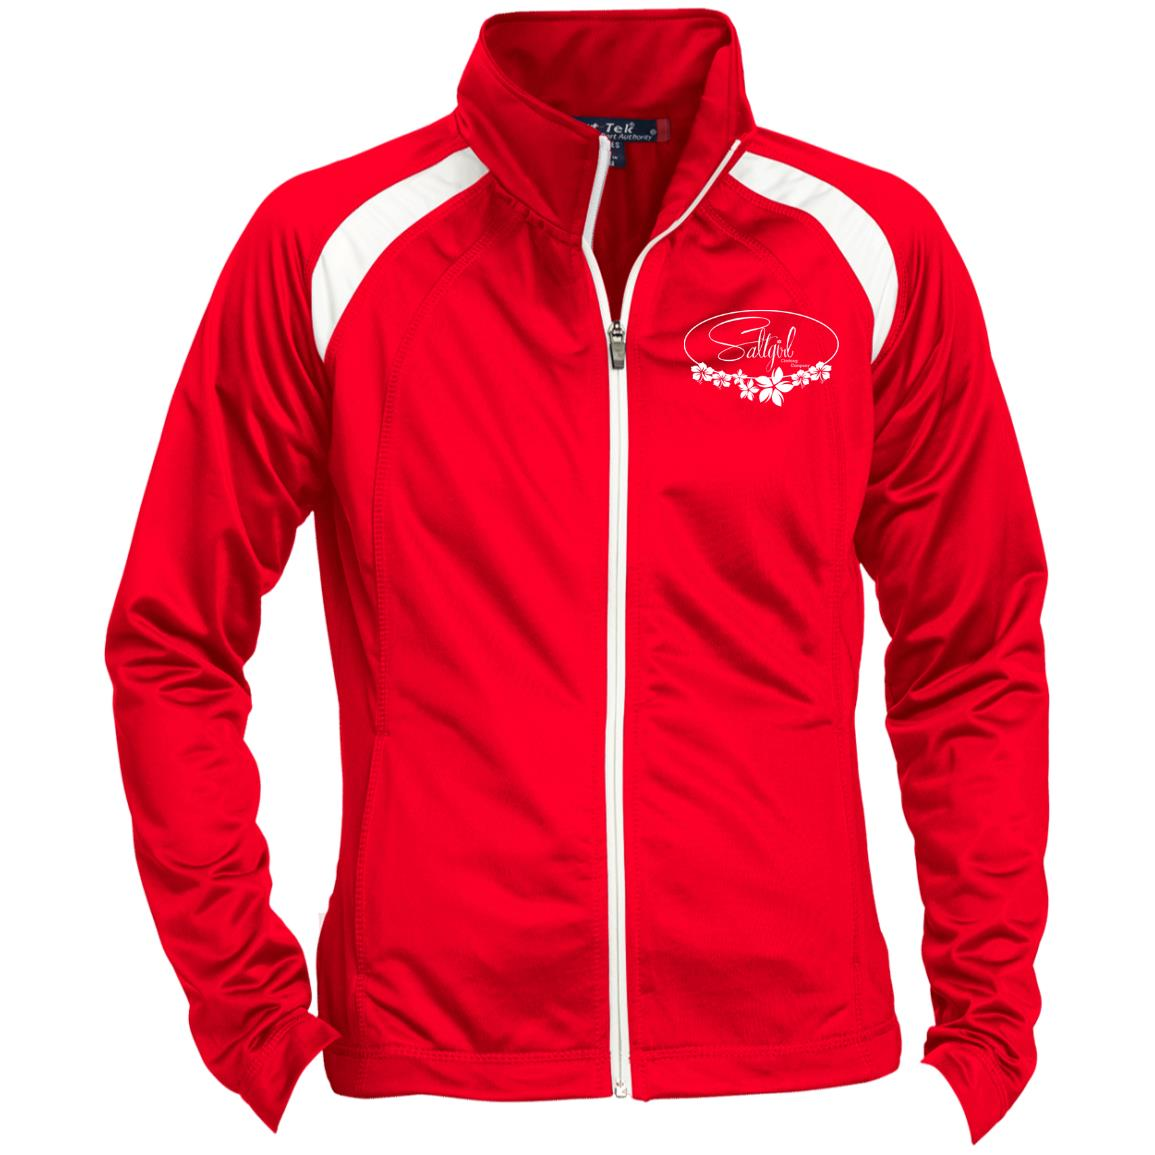 LST90 Ladies' Raglan Sleeve Warmup Jacket